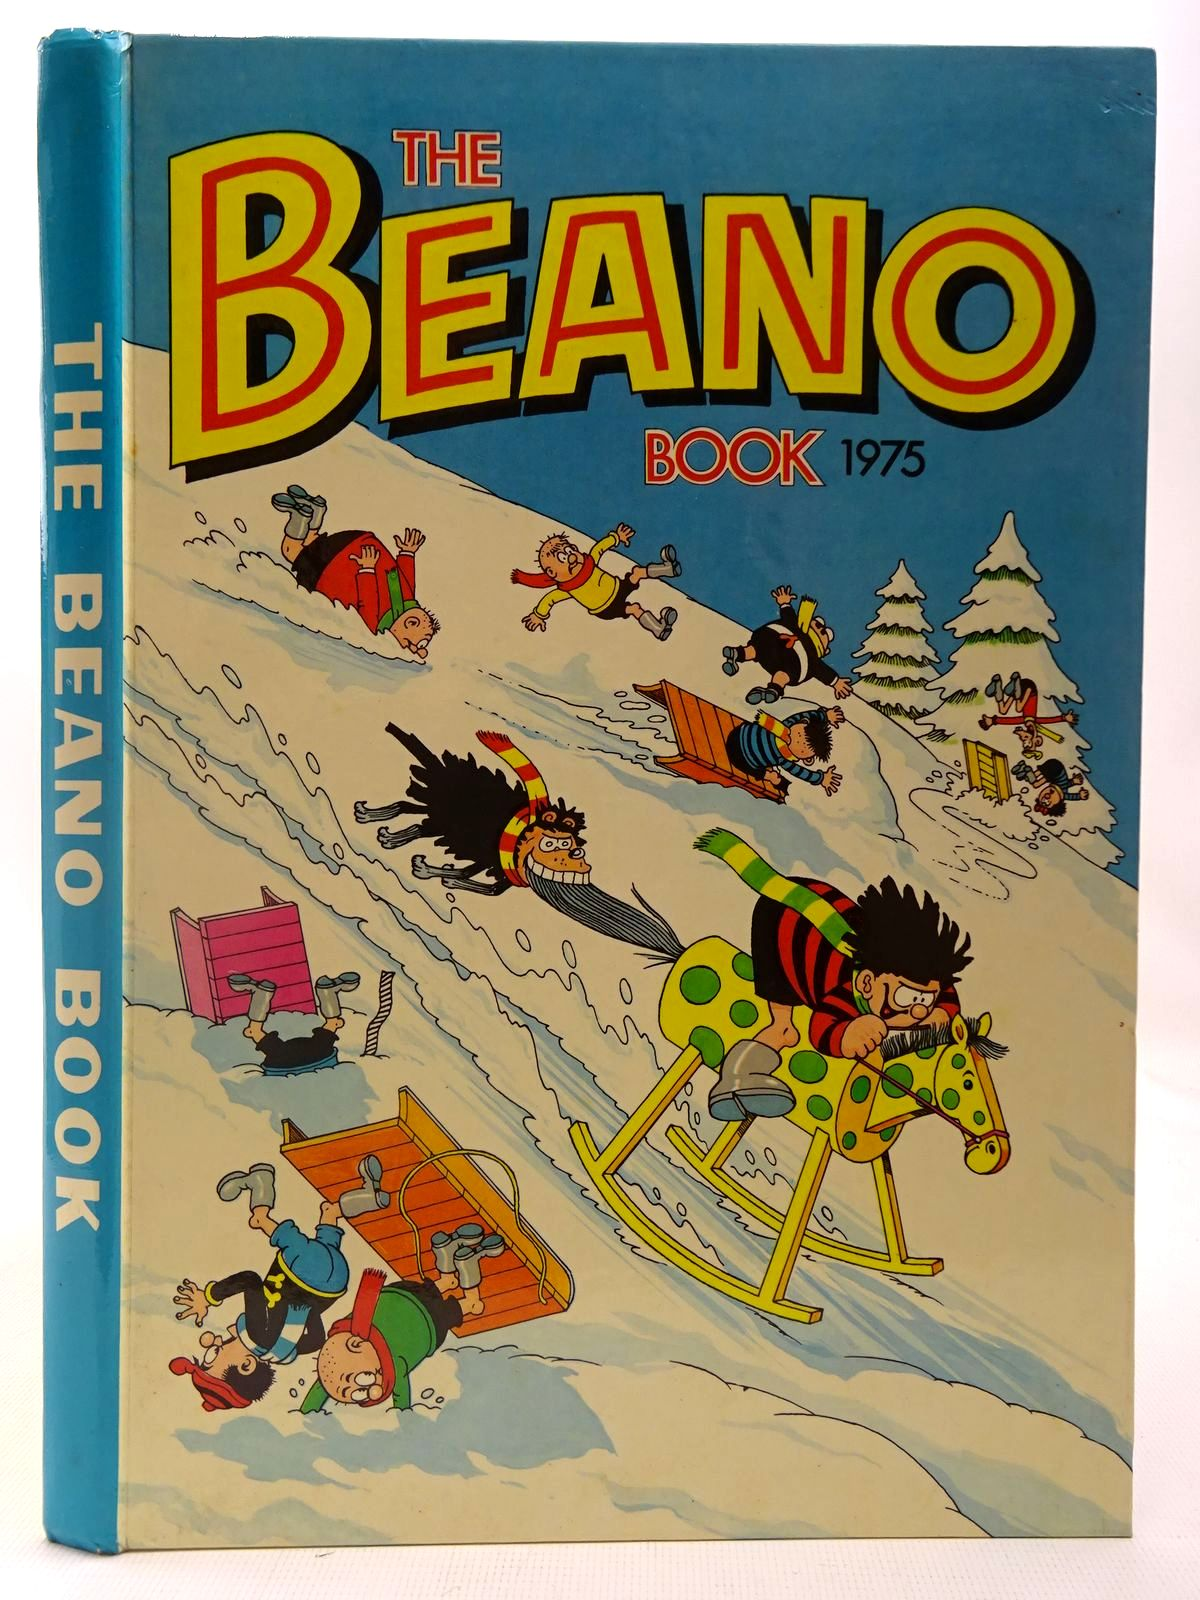 Photo of THE BEANO BOOK 1975 published by D.C. Thomson & Co Ltd. (STOCK CODE: 2127142)  for sale by Stella & Rose's Books